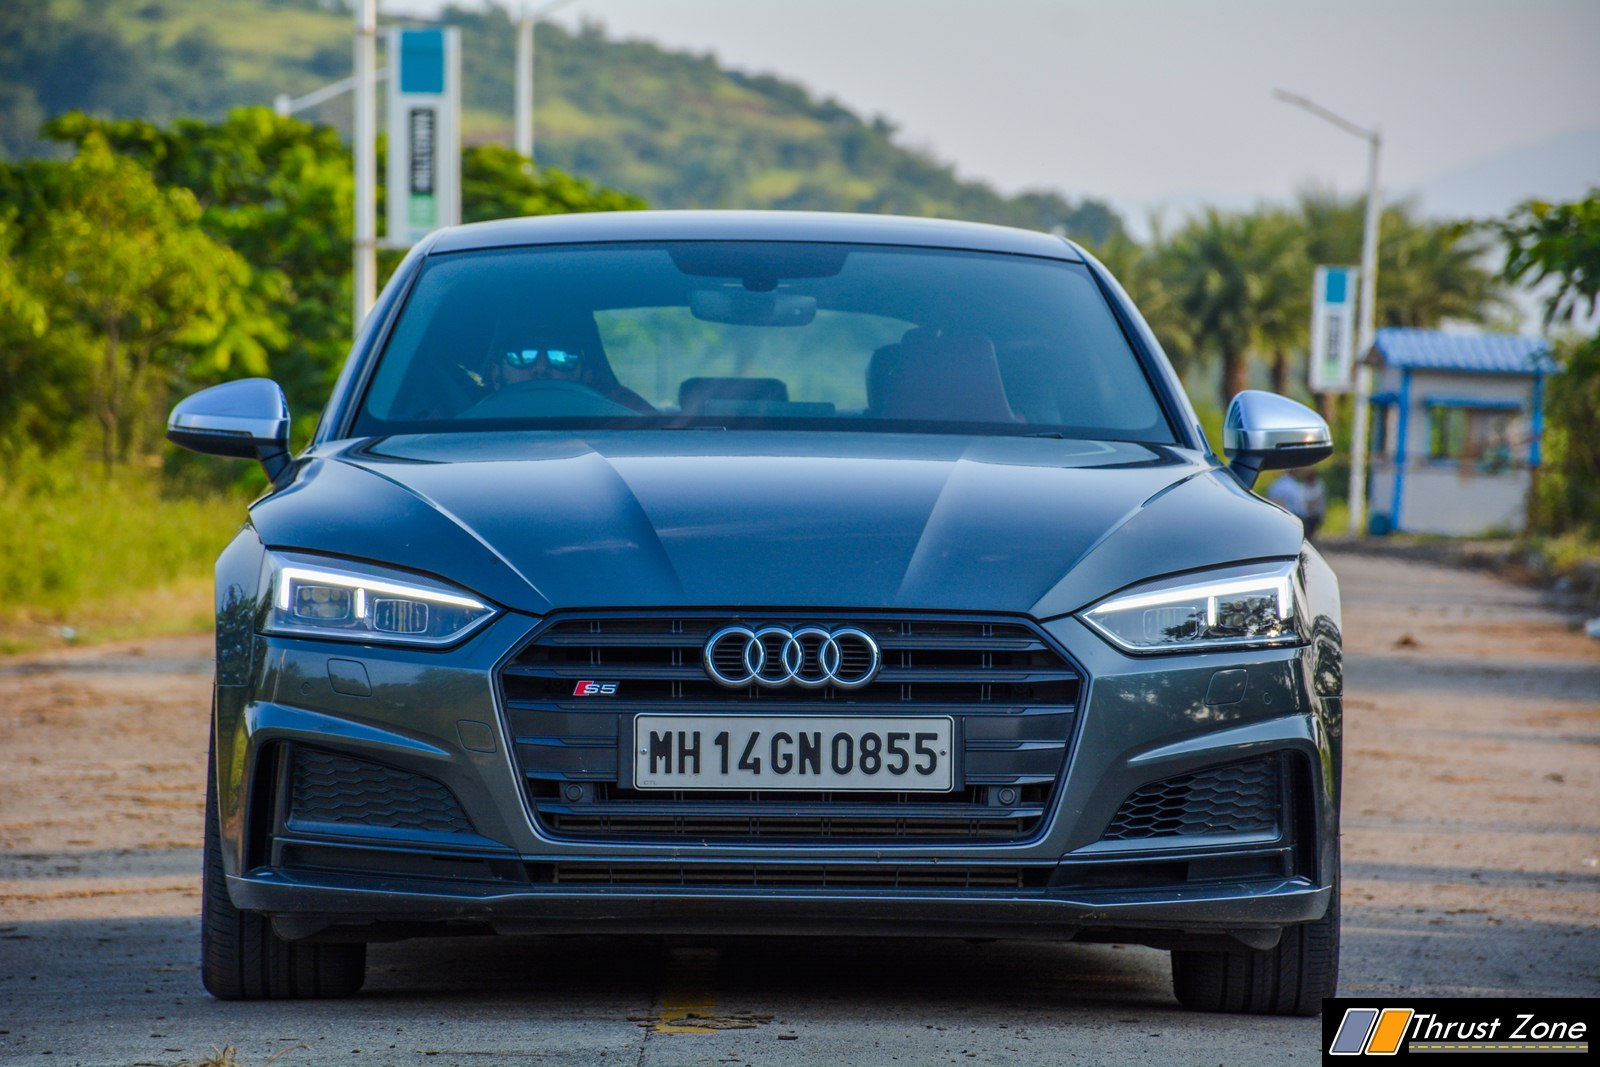 https://www.thrustzone.com/wp-content/uploads/2018/10/2018-Audi-S5-India-Review-15.jpg